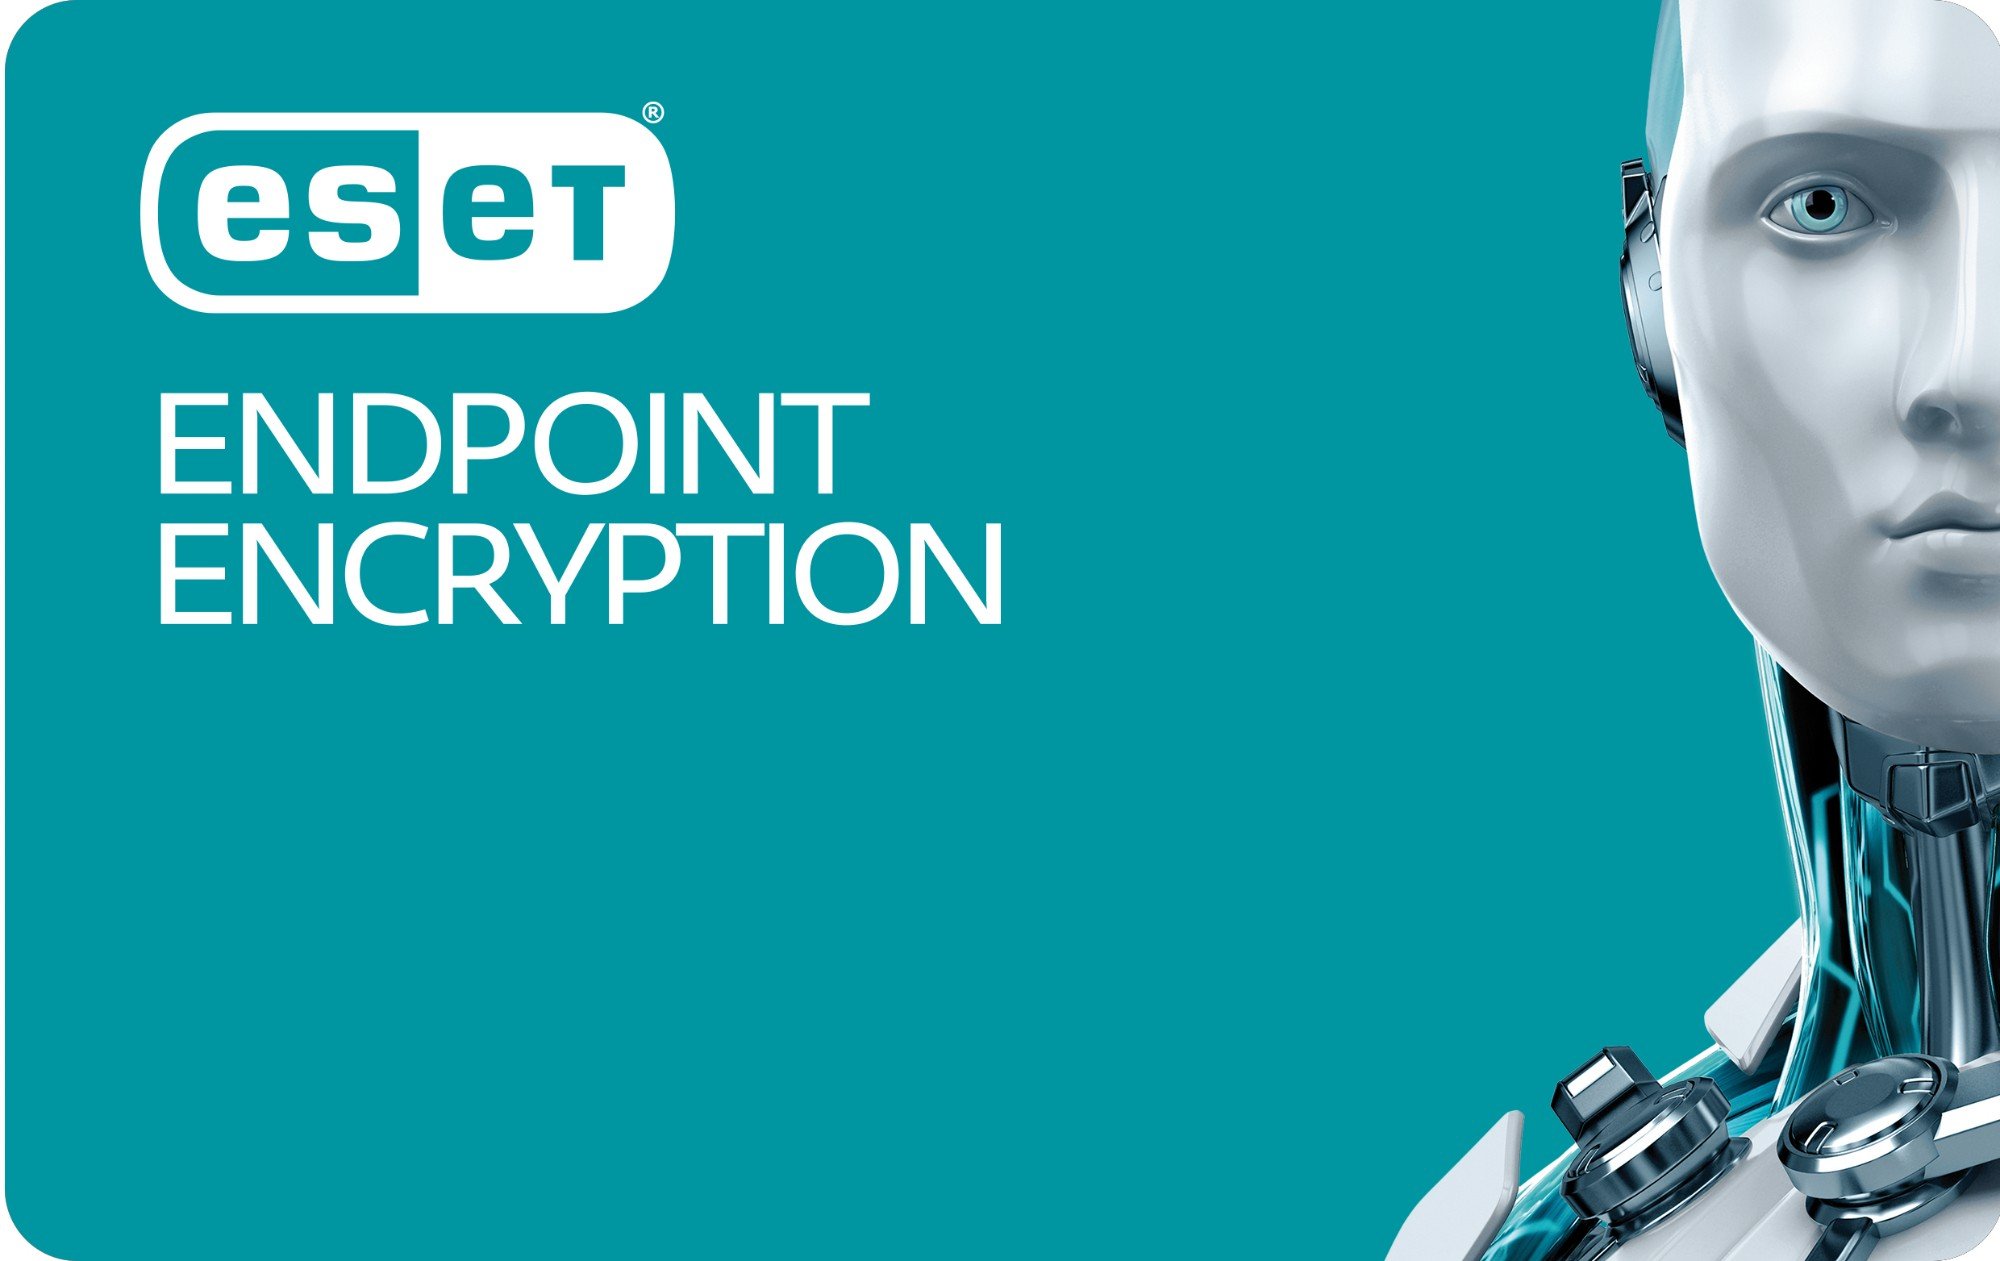 ESET Endpoint Encryption Pro 100 - 299 User Government (GOV) license 100 - 299 license(s) 1 year(s)